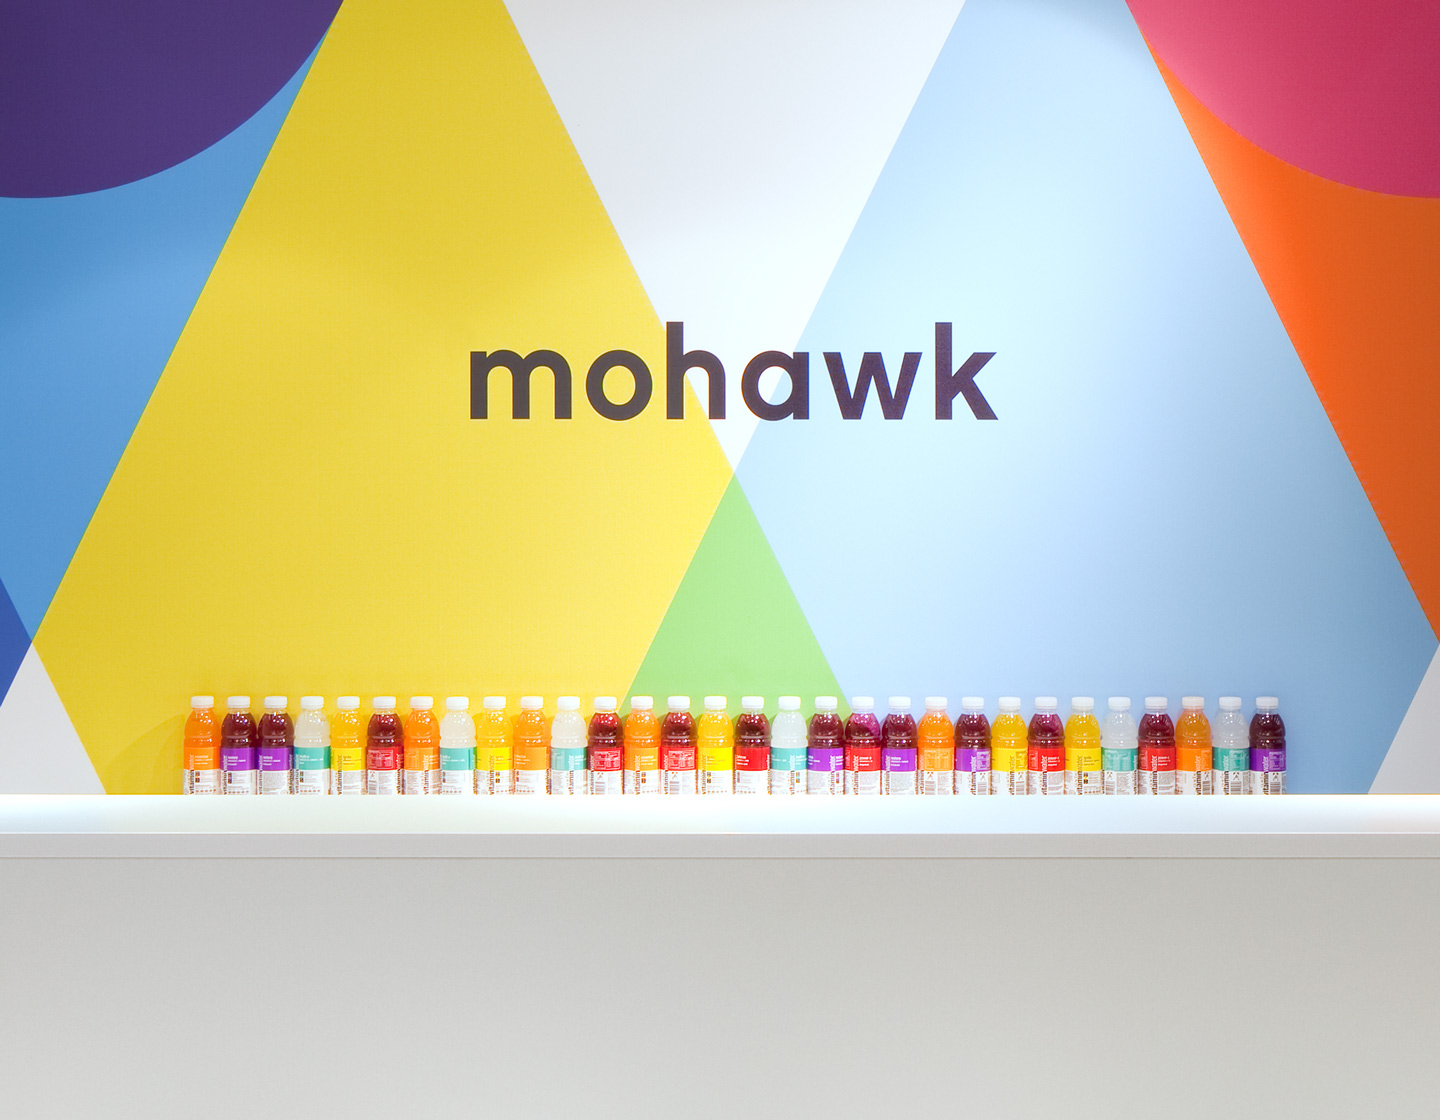 mohawk drupa messe event design